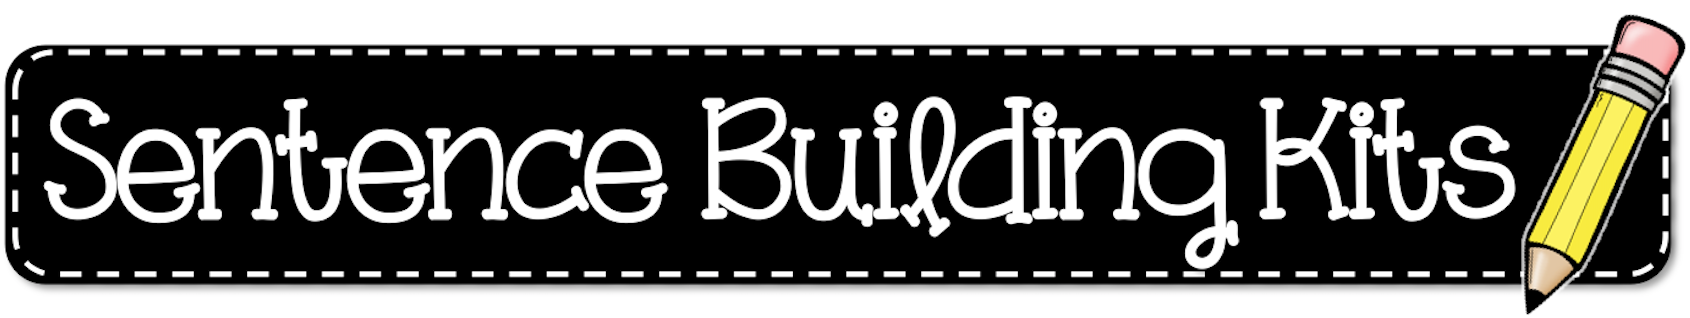 Header Literacy Sentence Building Kits